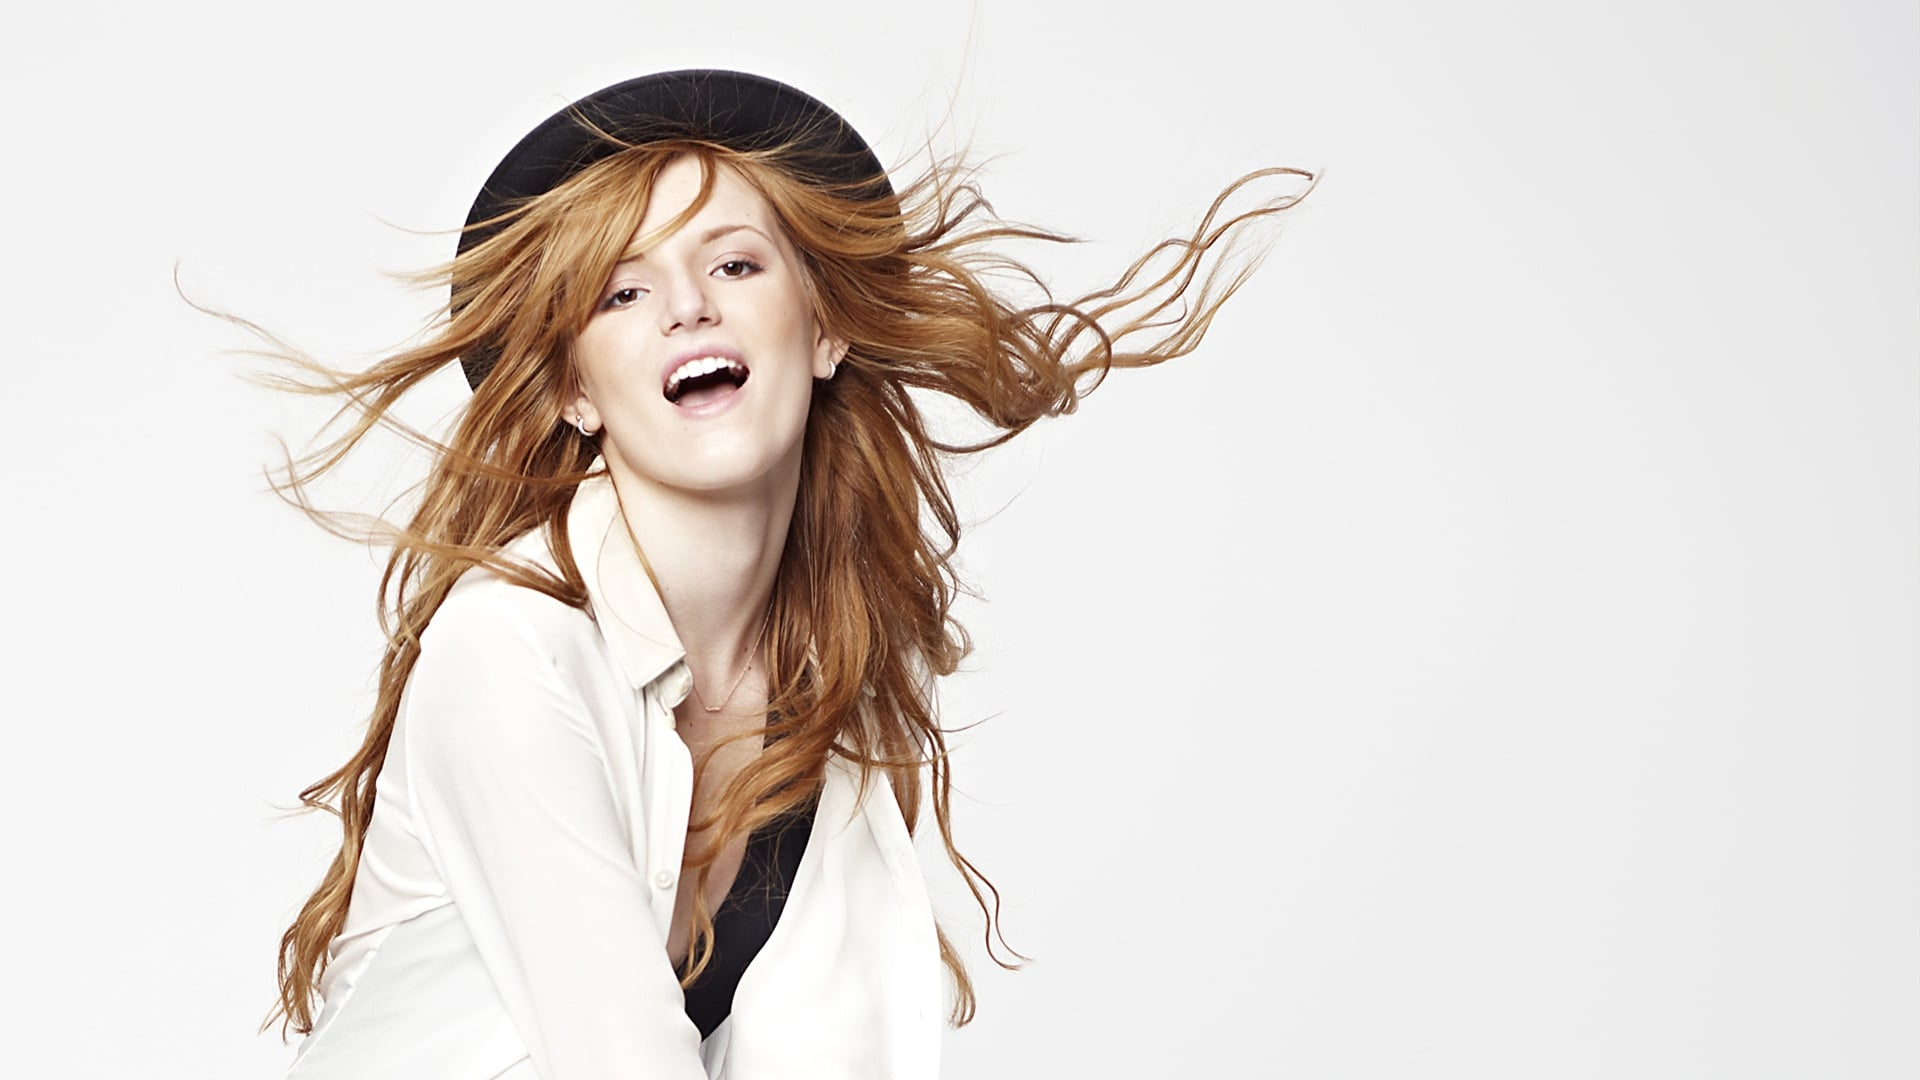 Awesome Cool Car Wallpapers Bella Thorne Hd Wallpapers Free Download